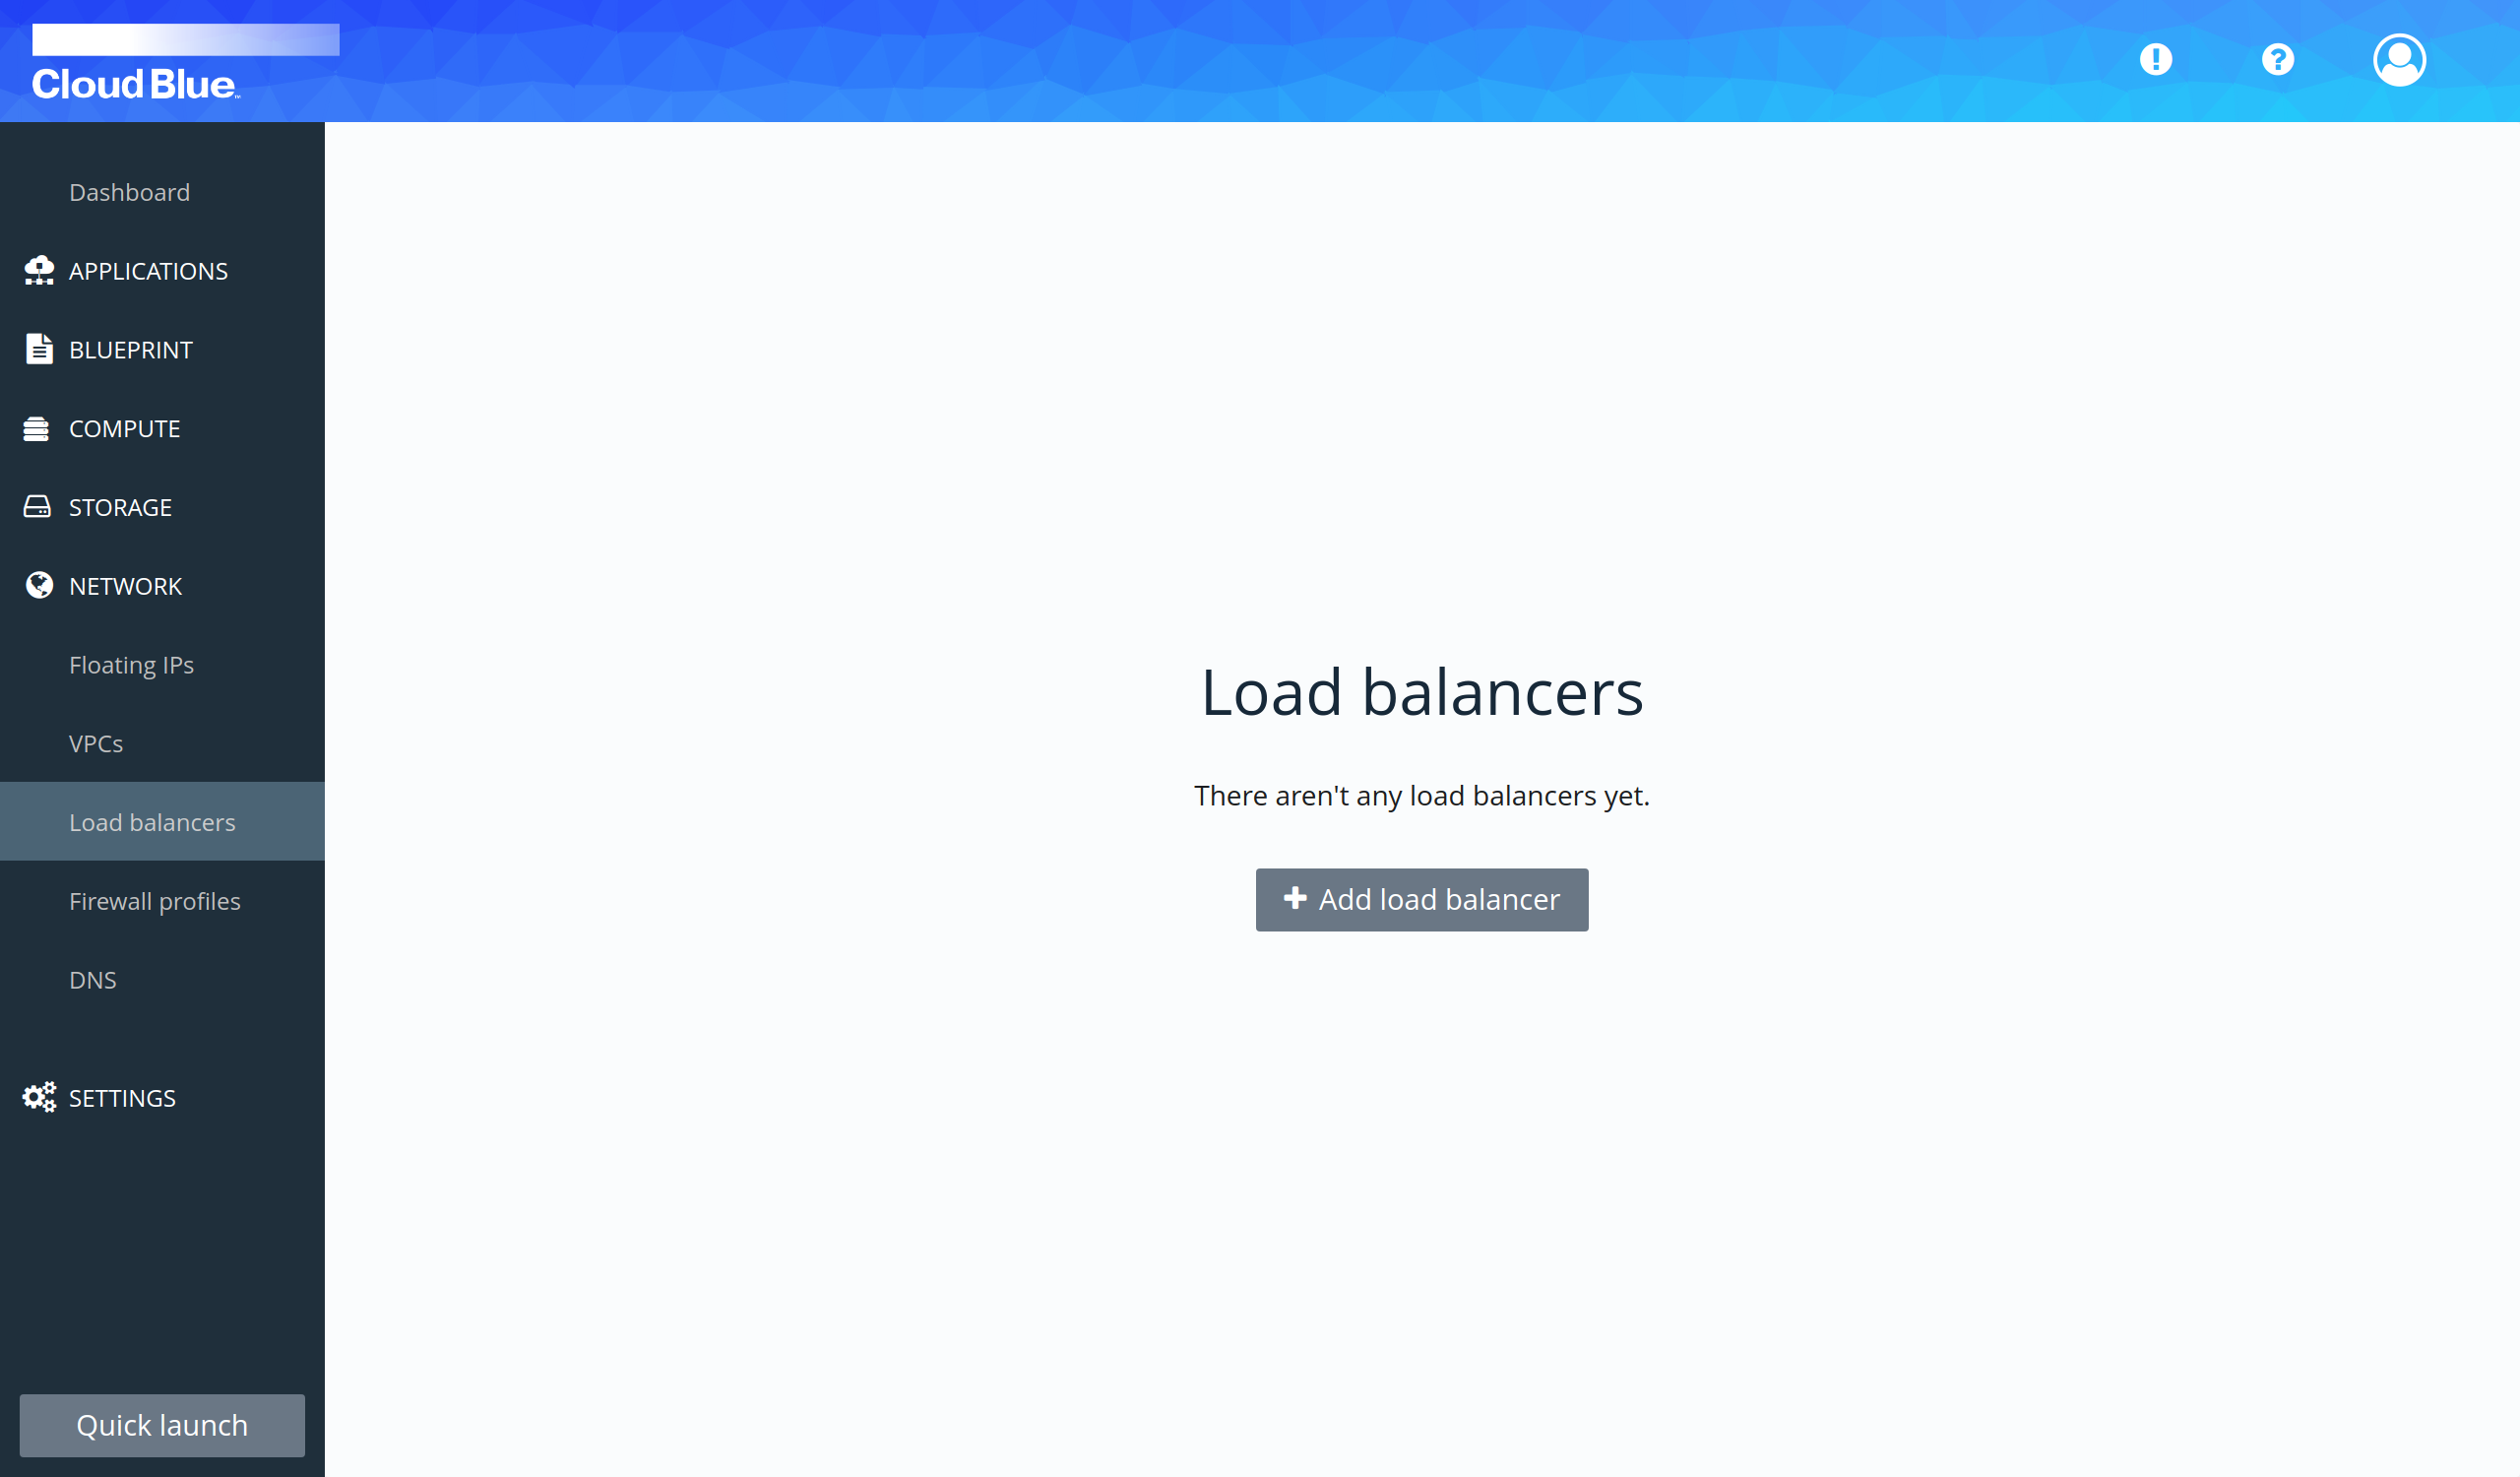 Load balancers section